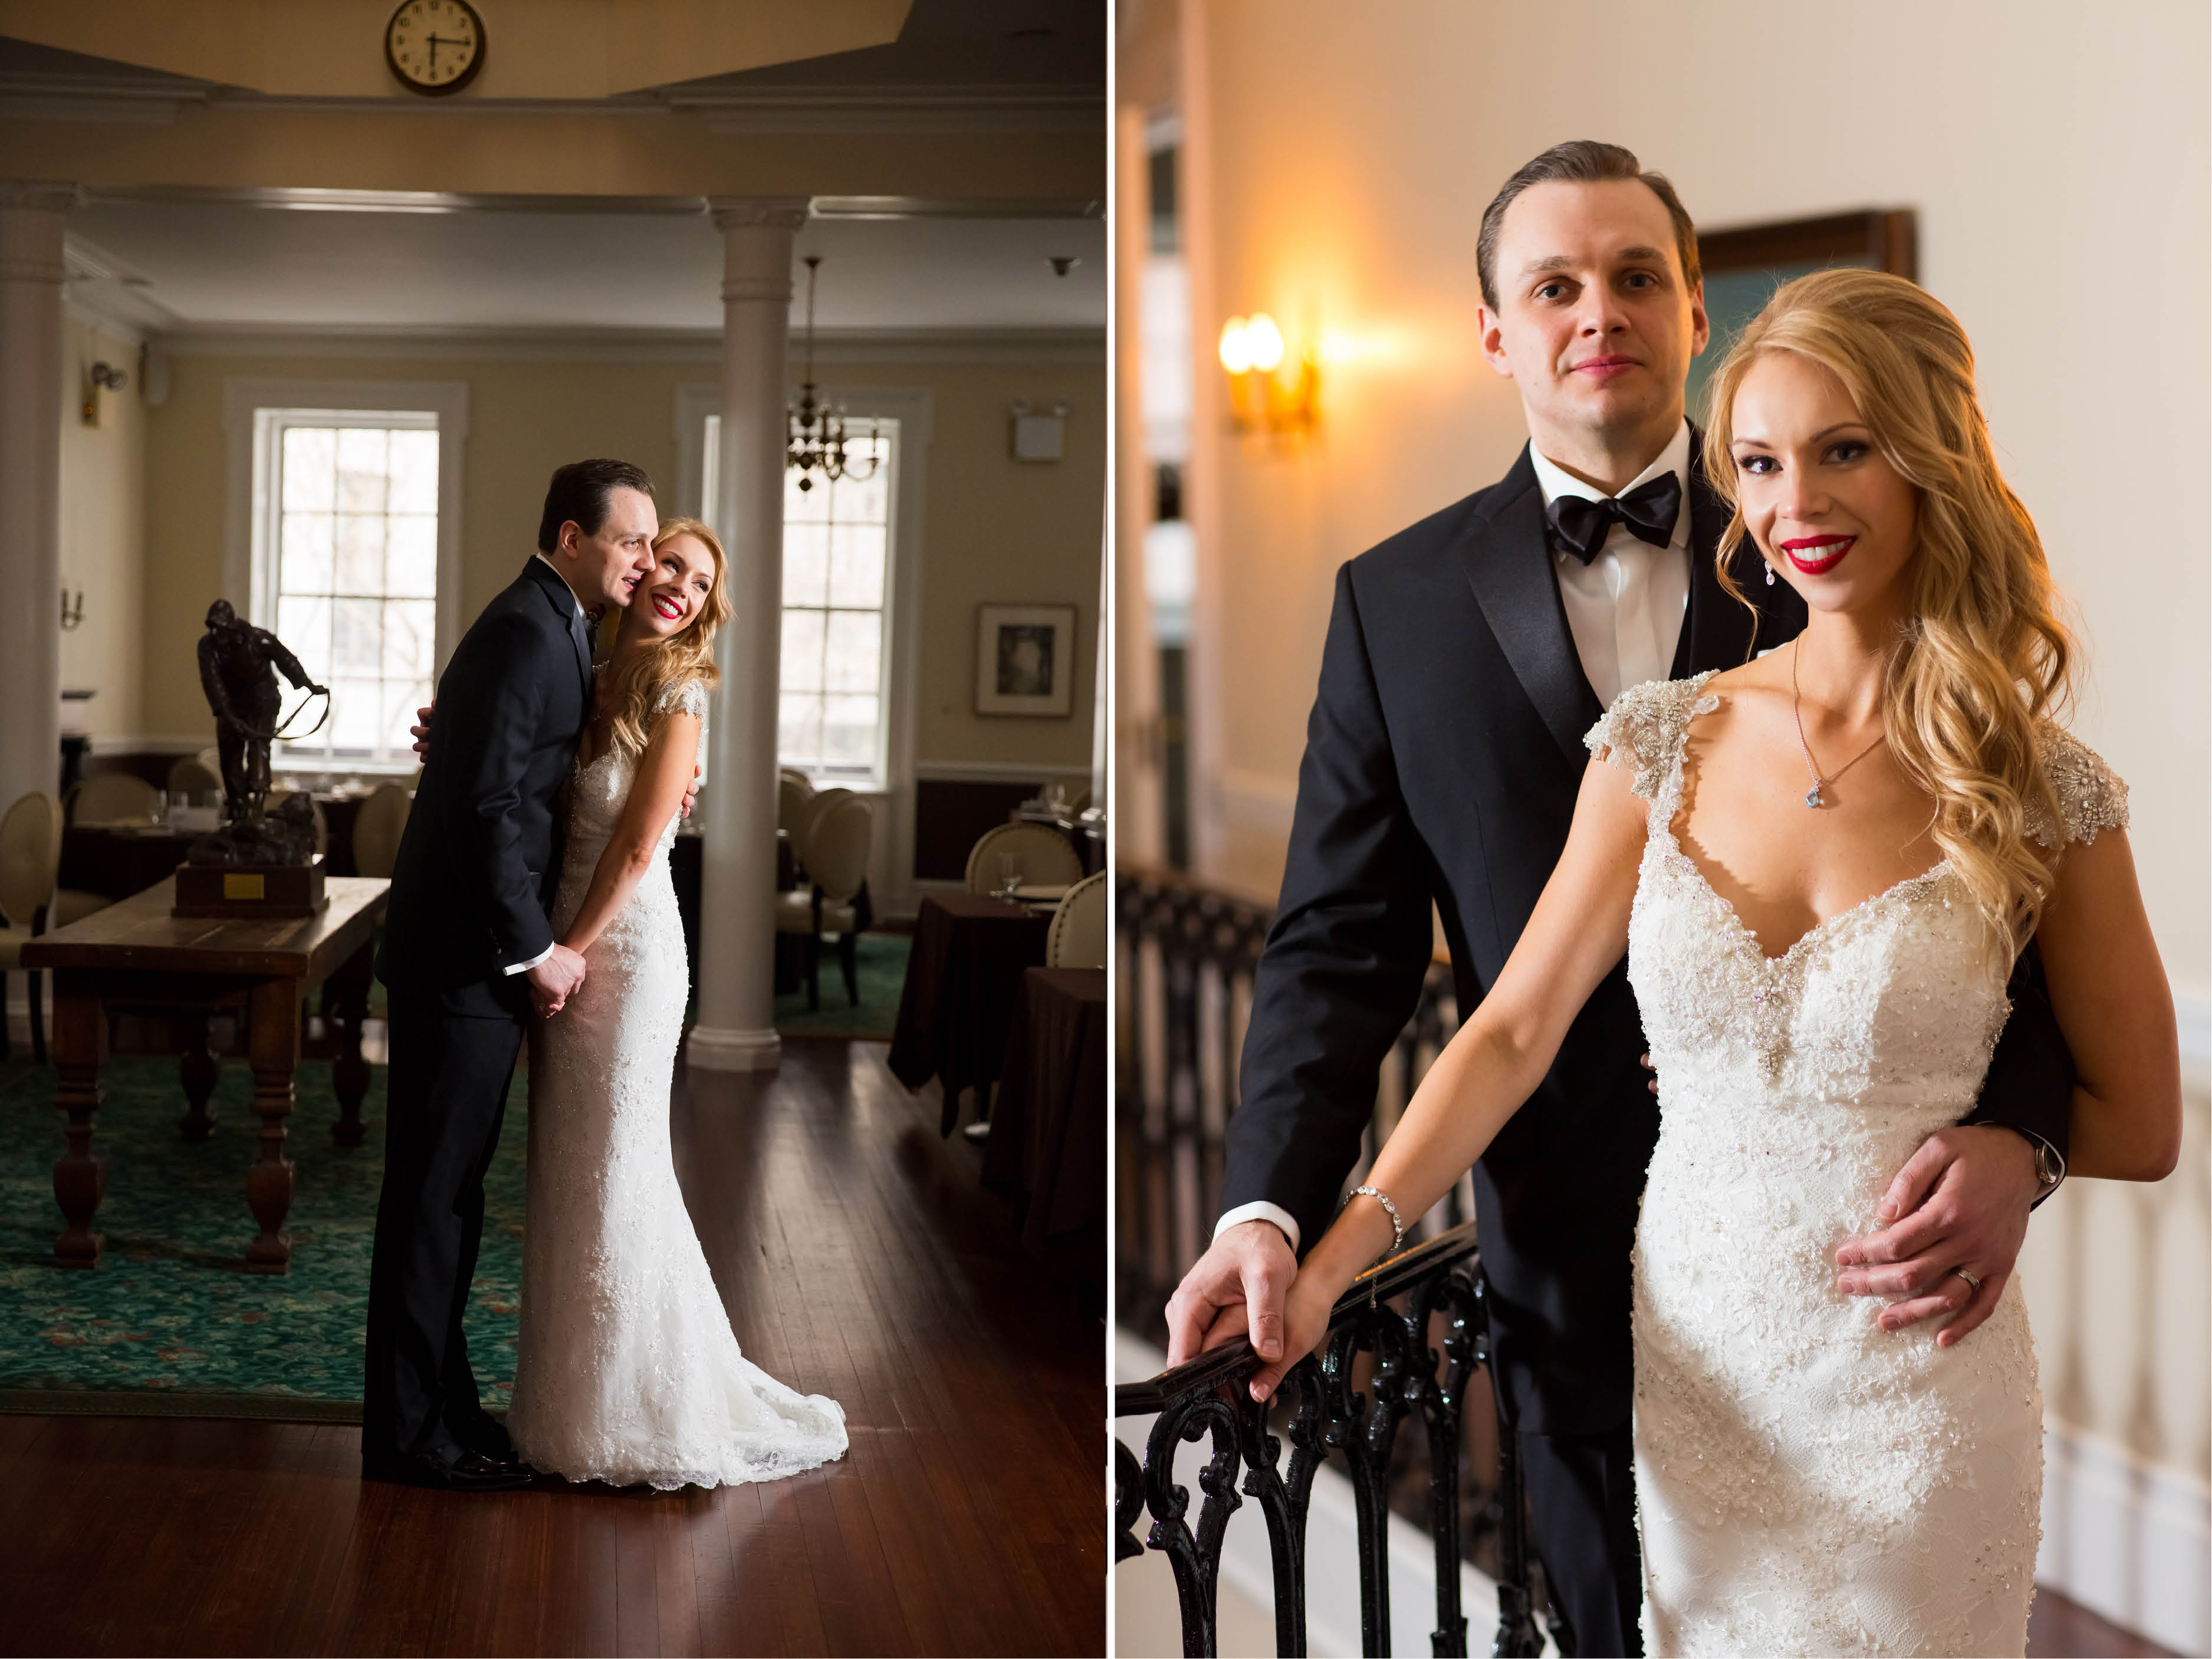 Emma_cleary_photography India House wedding7